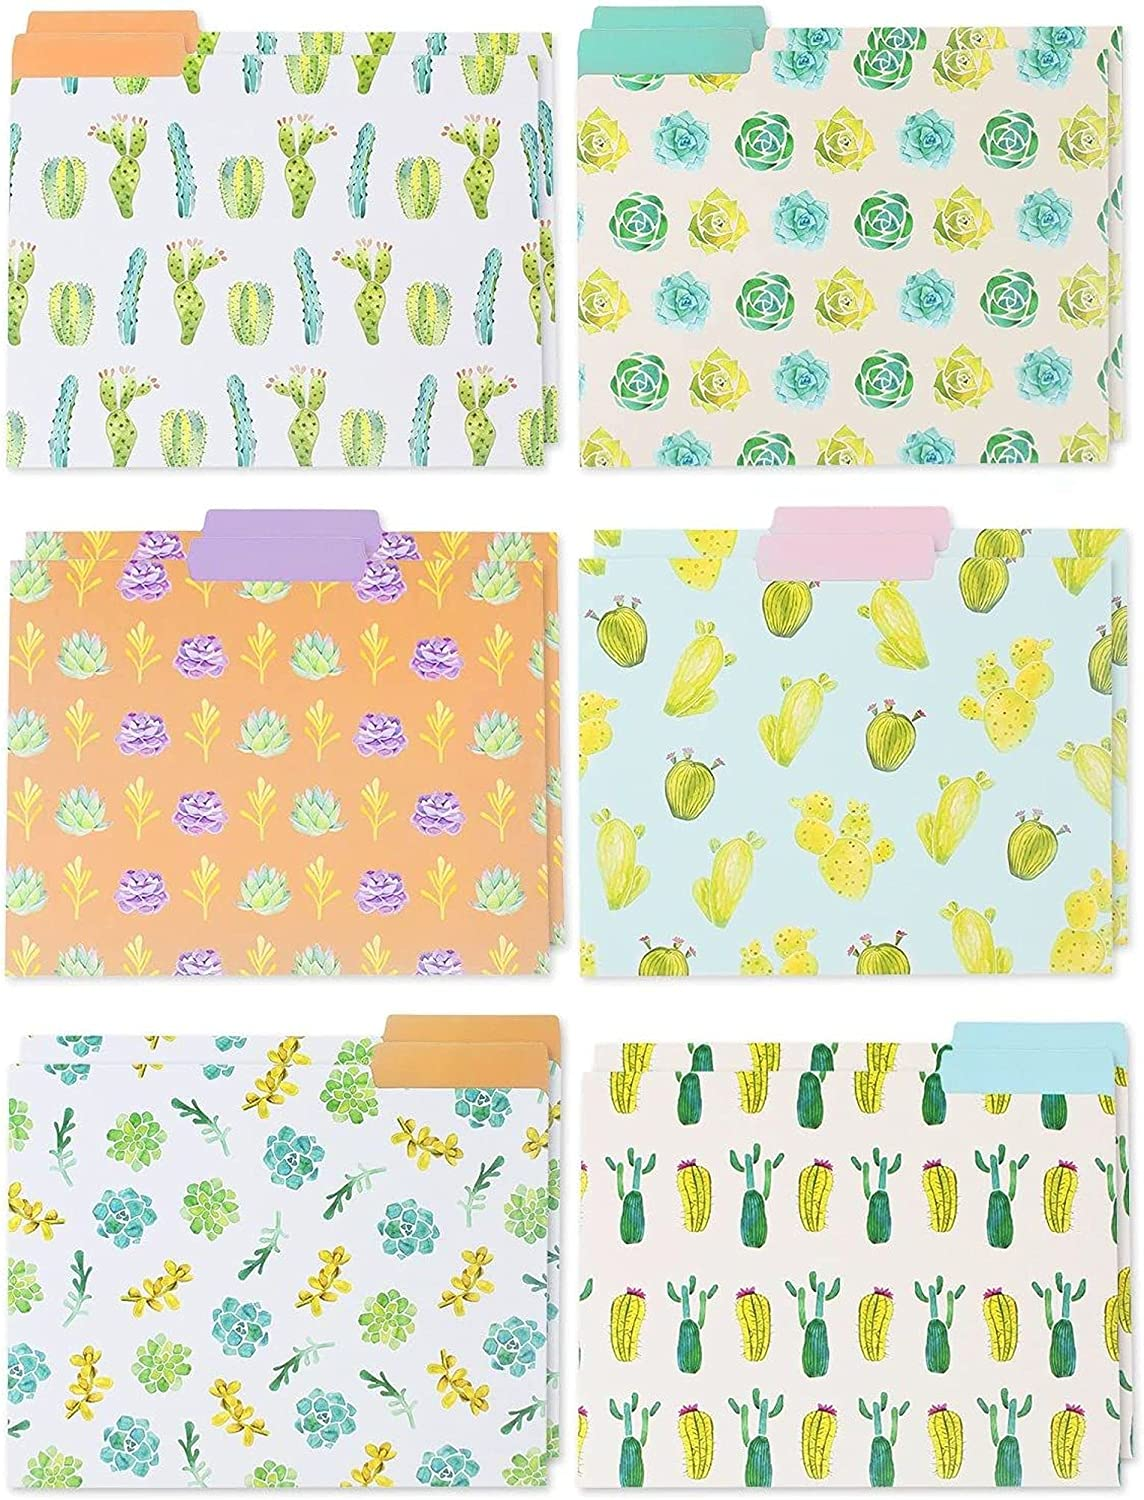 Our Quality inspection shop most popular File Folders - 12-Pack Succ Decorative Beautiful 6